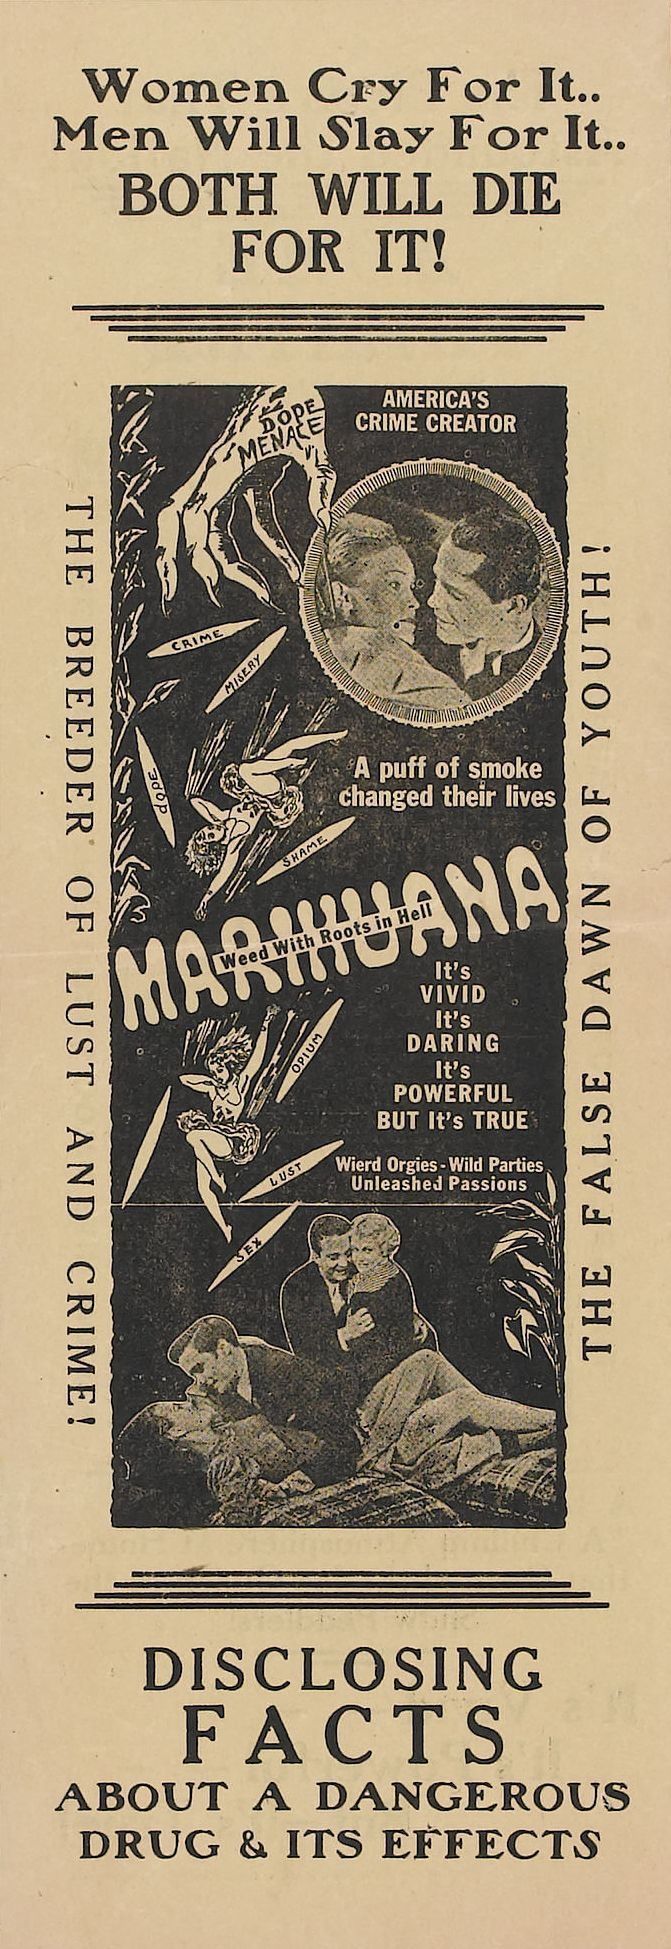 Vintage antimarijuana ad. Marijuana is far less dangerous than alcohol, tobacco, prescription drugs, cocaine, meth, etc. Make easy, small mints for safe pain relief or enjoyment!  MARIJUANA - Guide to Buying, Growing, Harvesting, and Making Medical Marijuana Oil and Delicious Candies to Treat Pain and Ailments by Mary Bendis, Second Edition. Just $2.99 for great e-book!  www.muzzymemo.com